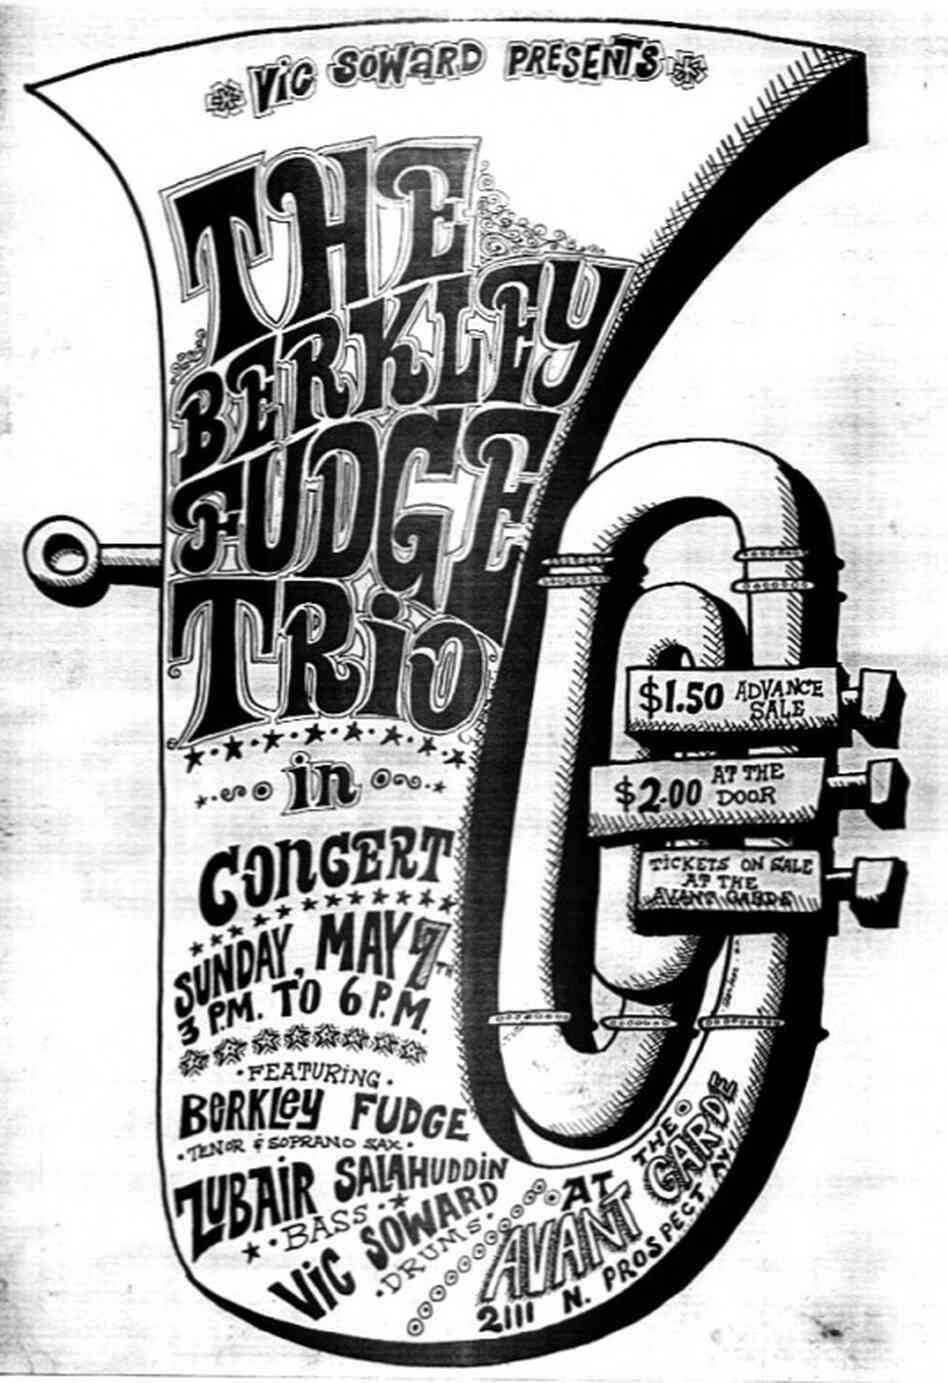 Berkeley Fudge poster